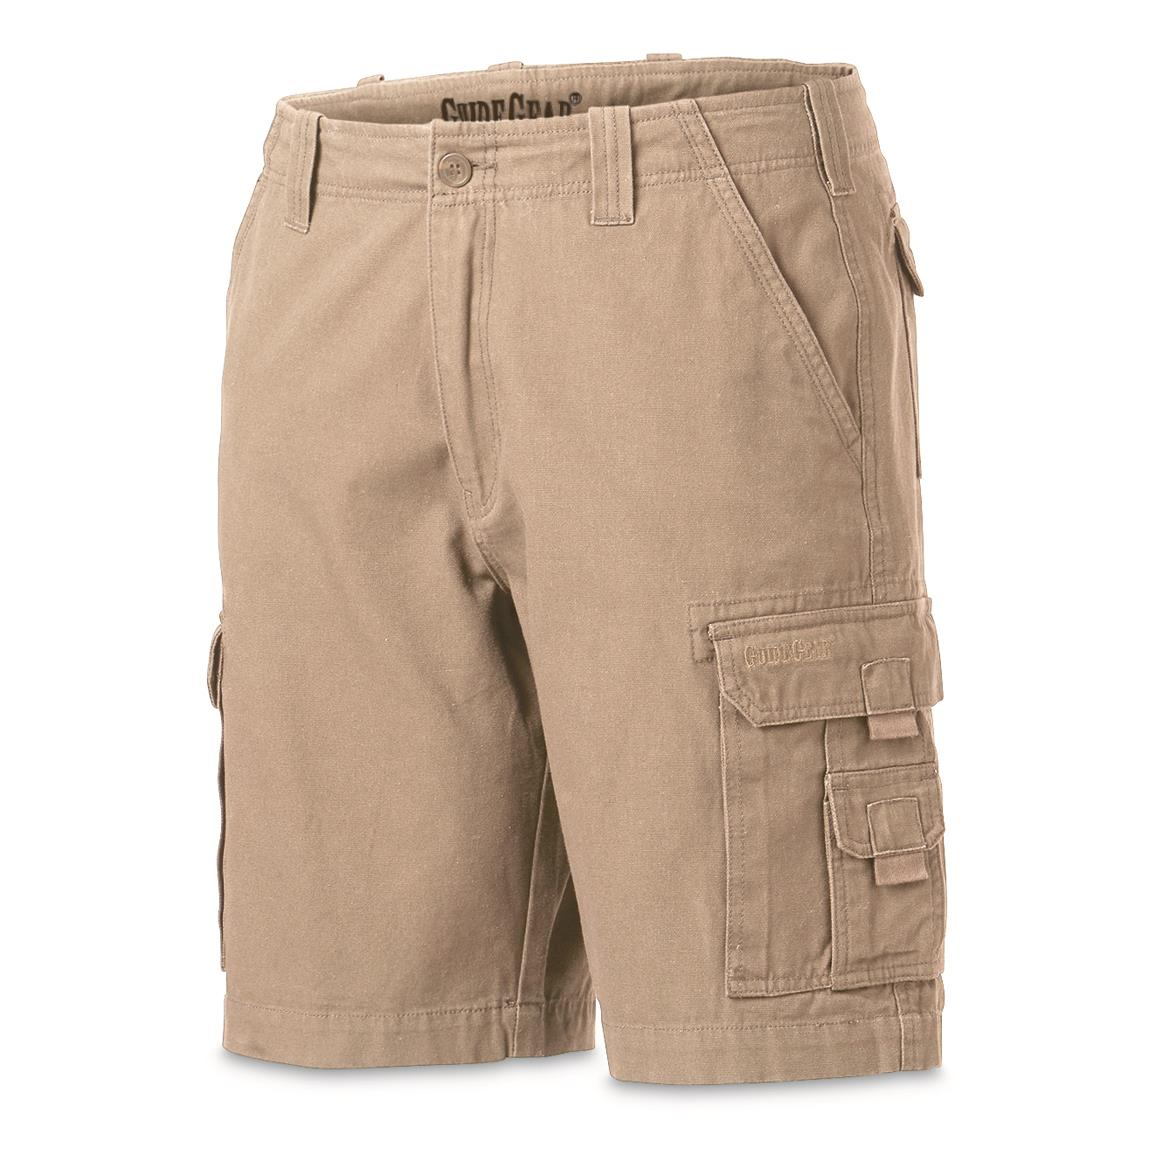 "Guide Gear Men's Outdoor Cargo Shorts, Khaki, 10"" inseam"